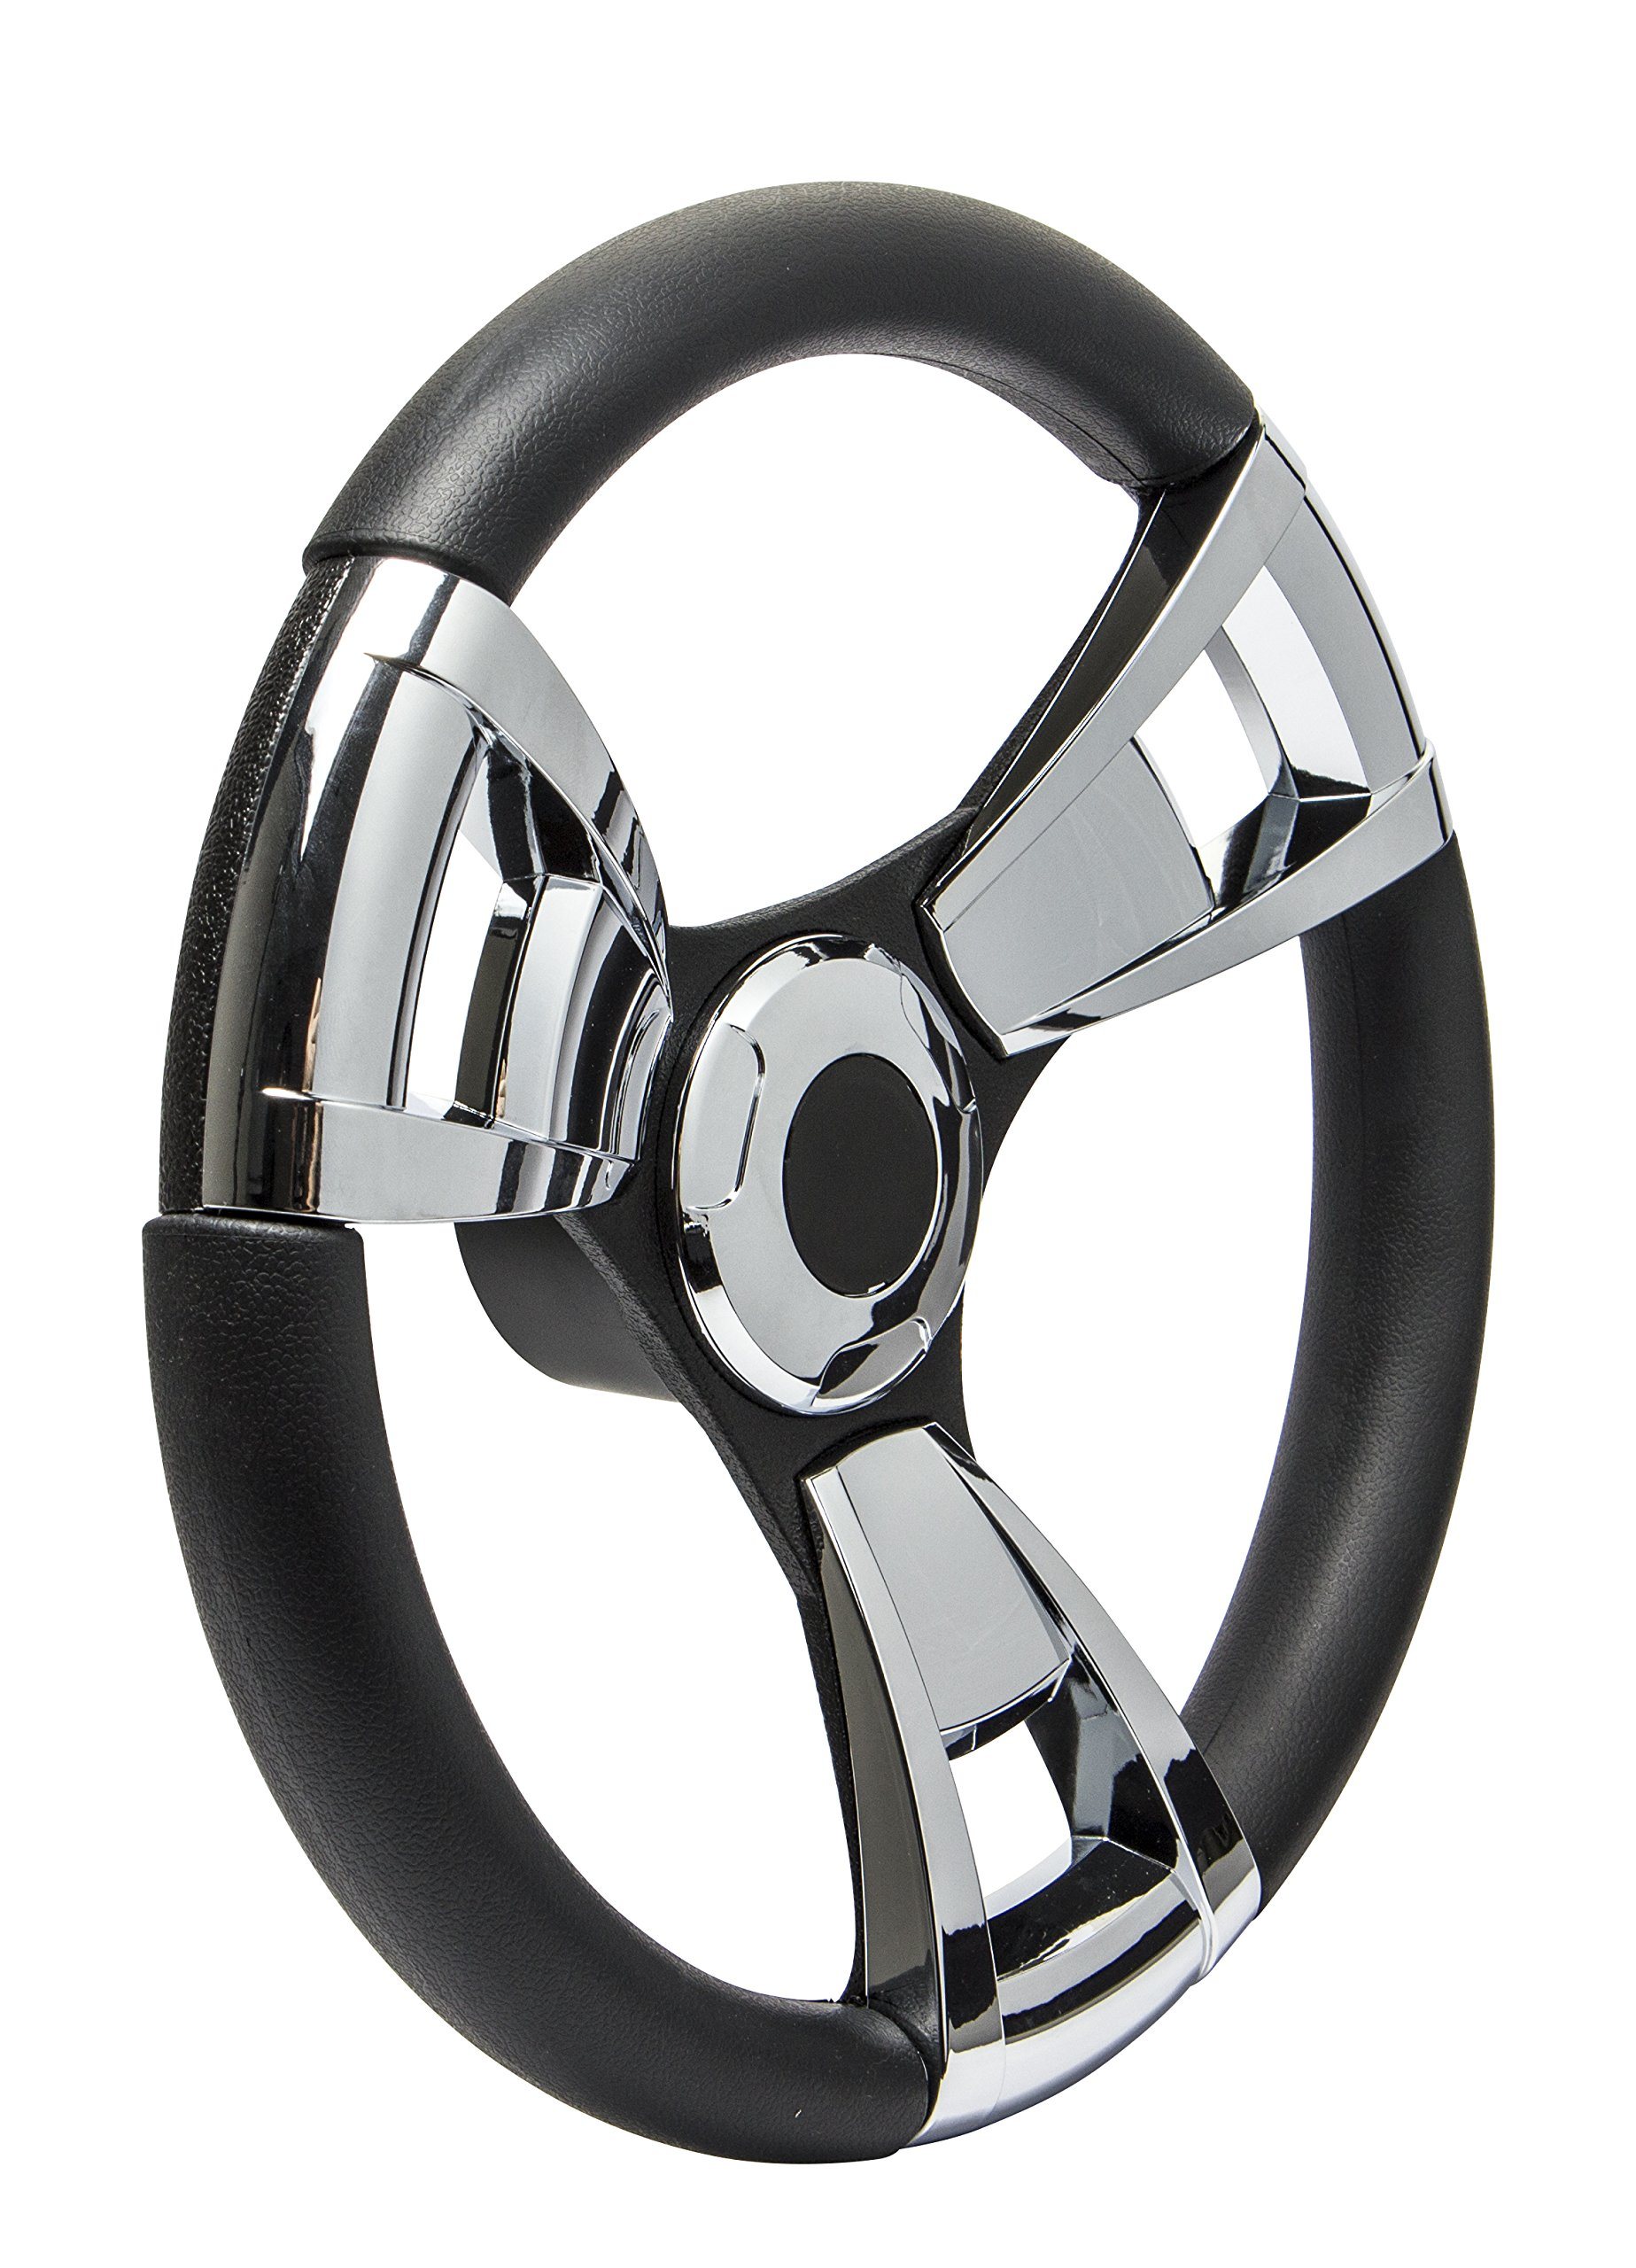 SeaStar Armada SW60105P Steering Wheel, Armada 13-1/2 inch, Chrome Inserts, 3 Spoke Equidistant by Dometic SeaStar